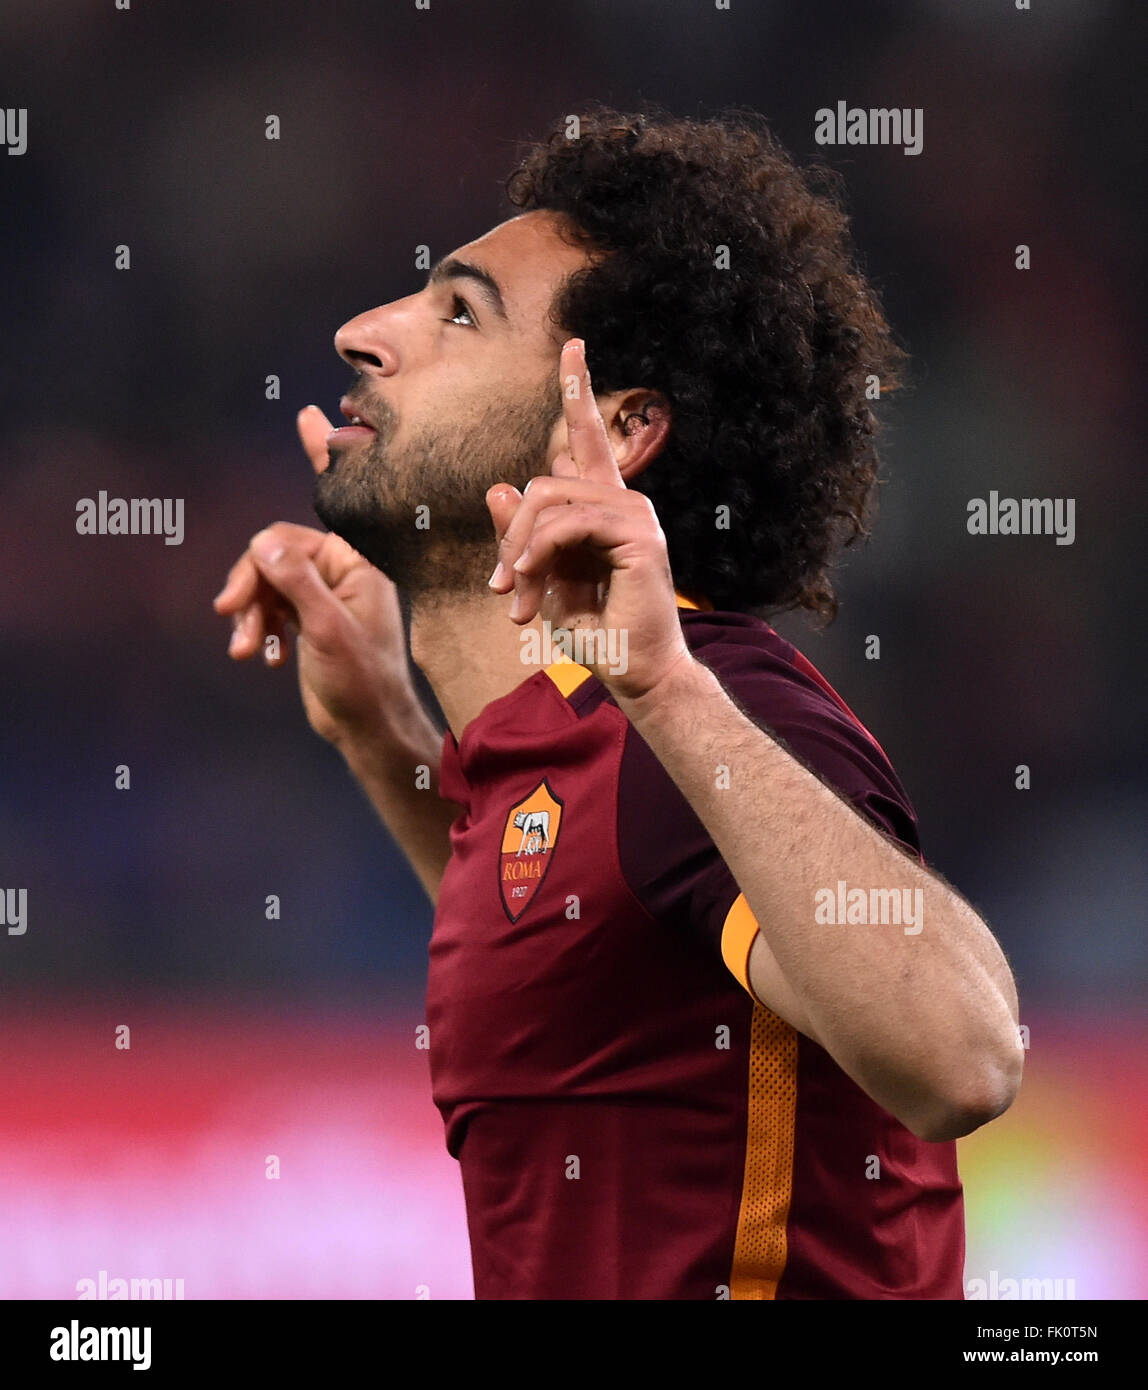 Rome, Italy. 4th Mar, 2016. Roma's Mohamed Salah celebrates after scoring during the Italian Serie A football match Stock Photo